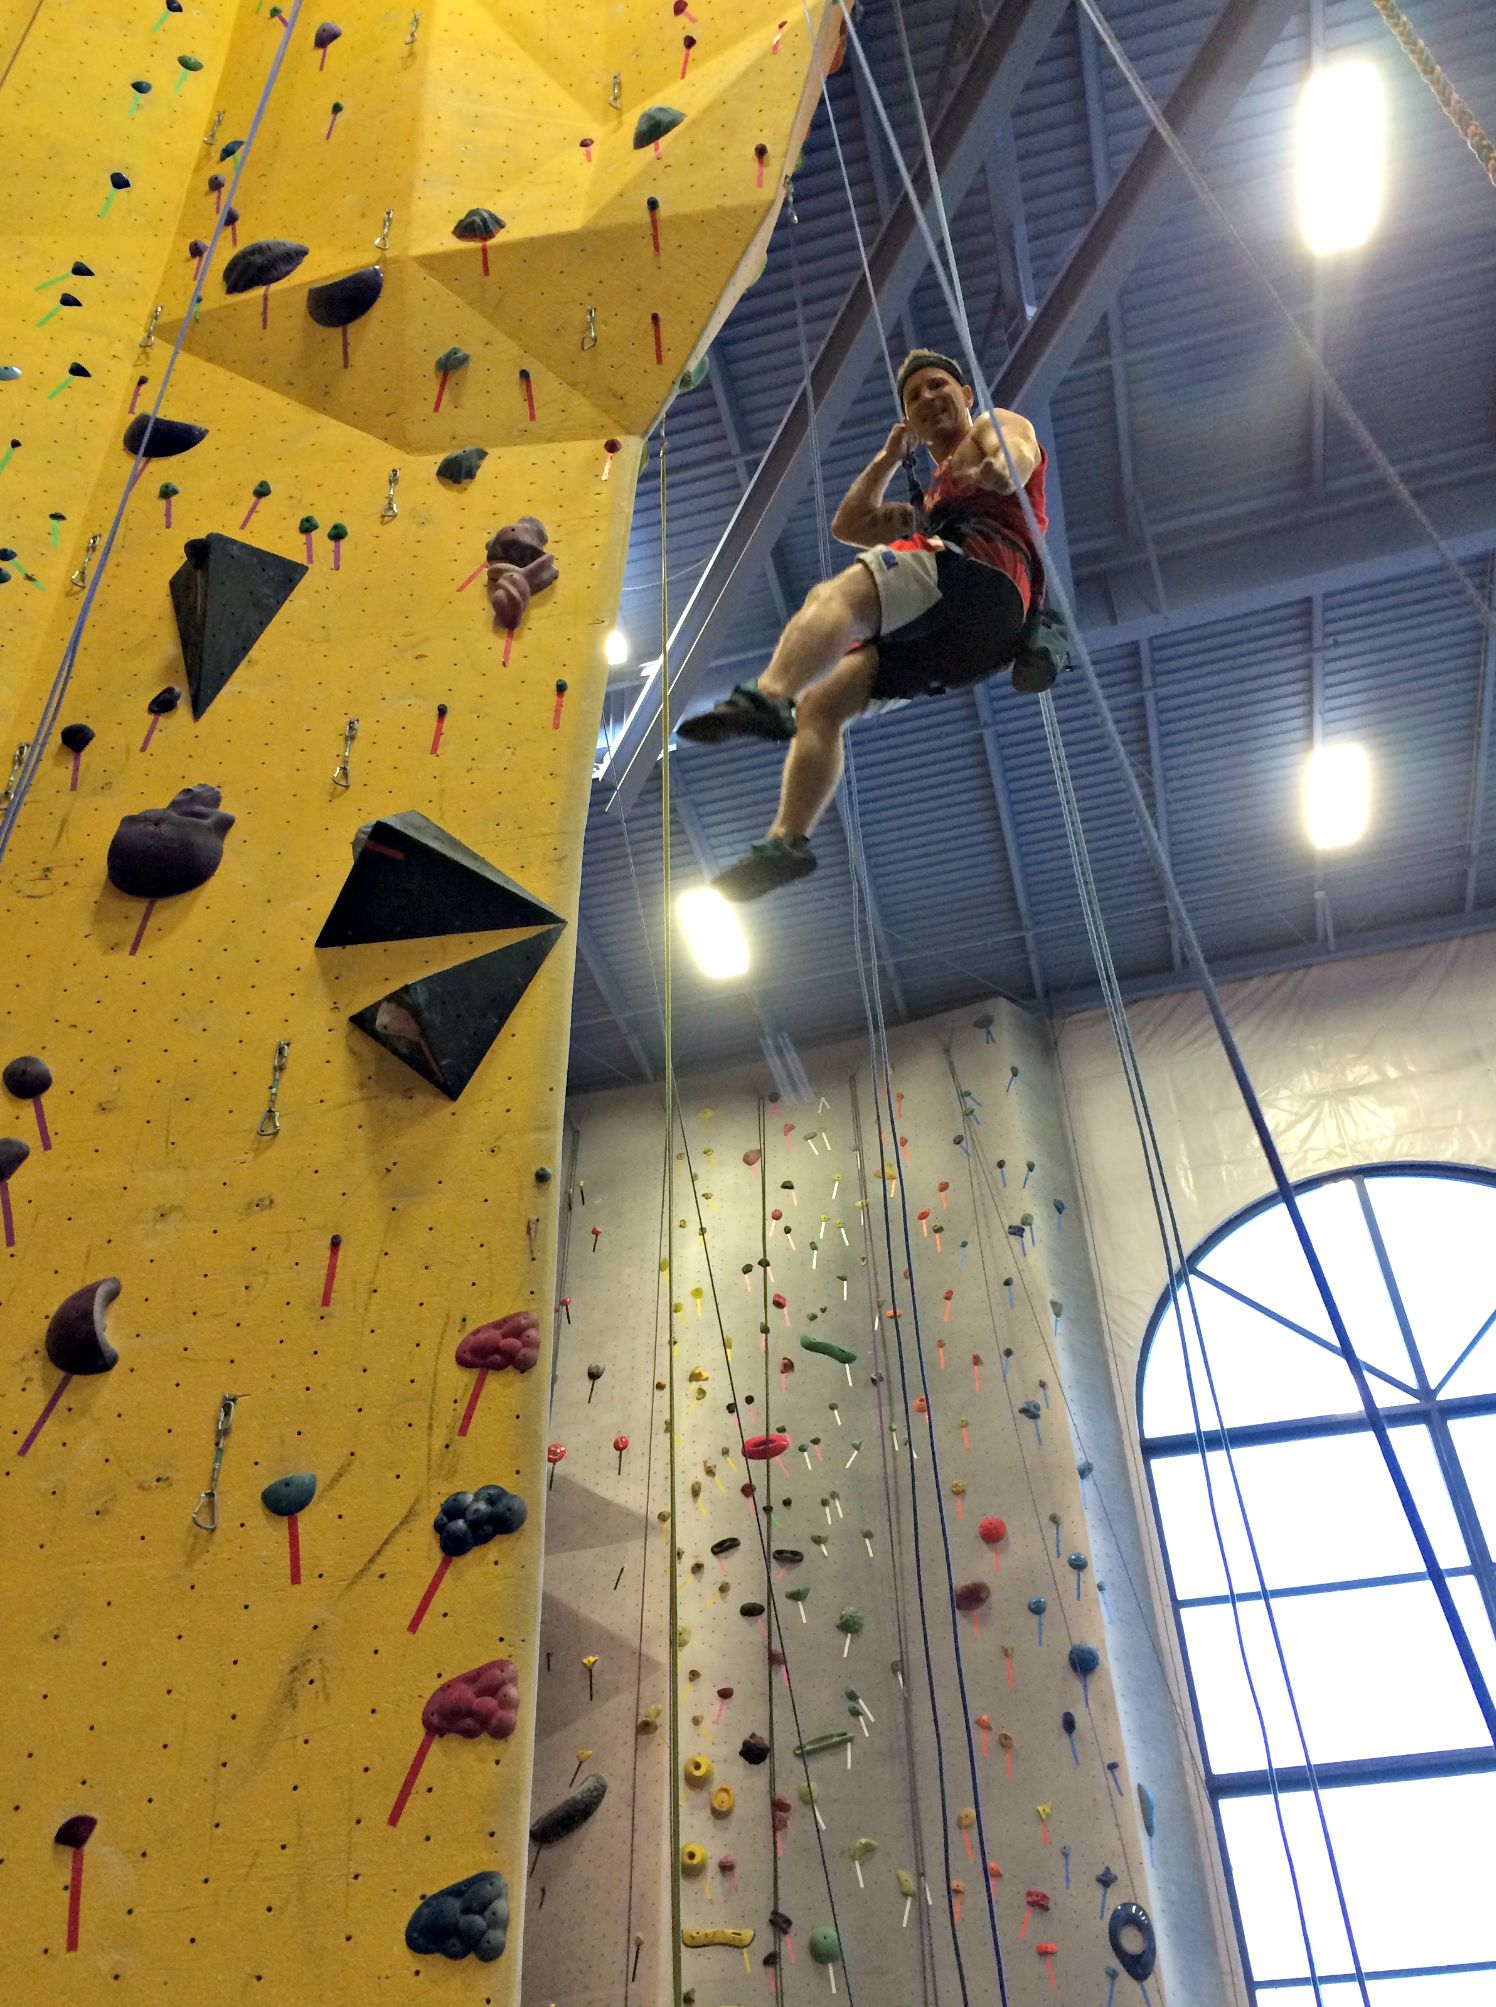 scott rappelling in climbing